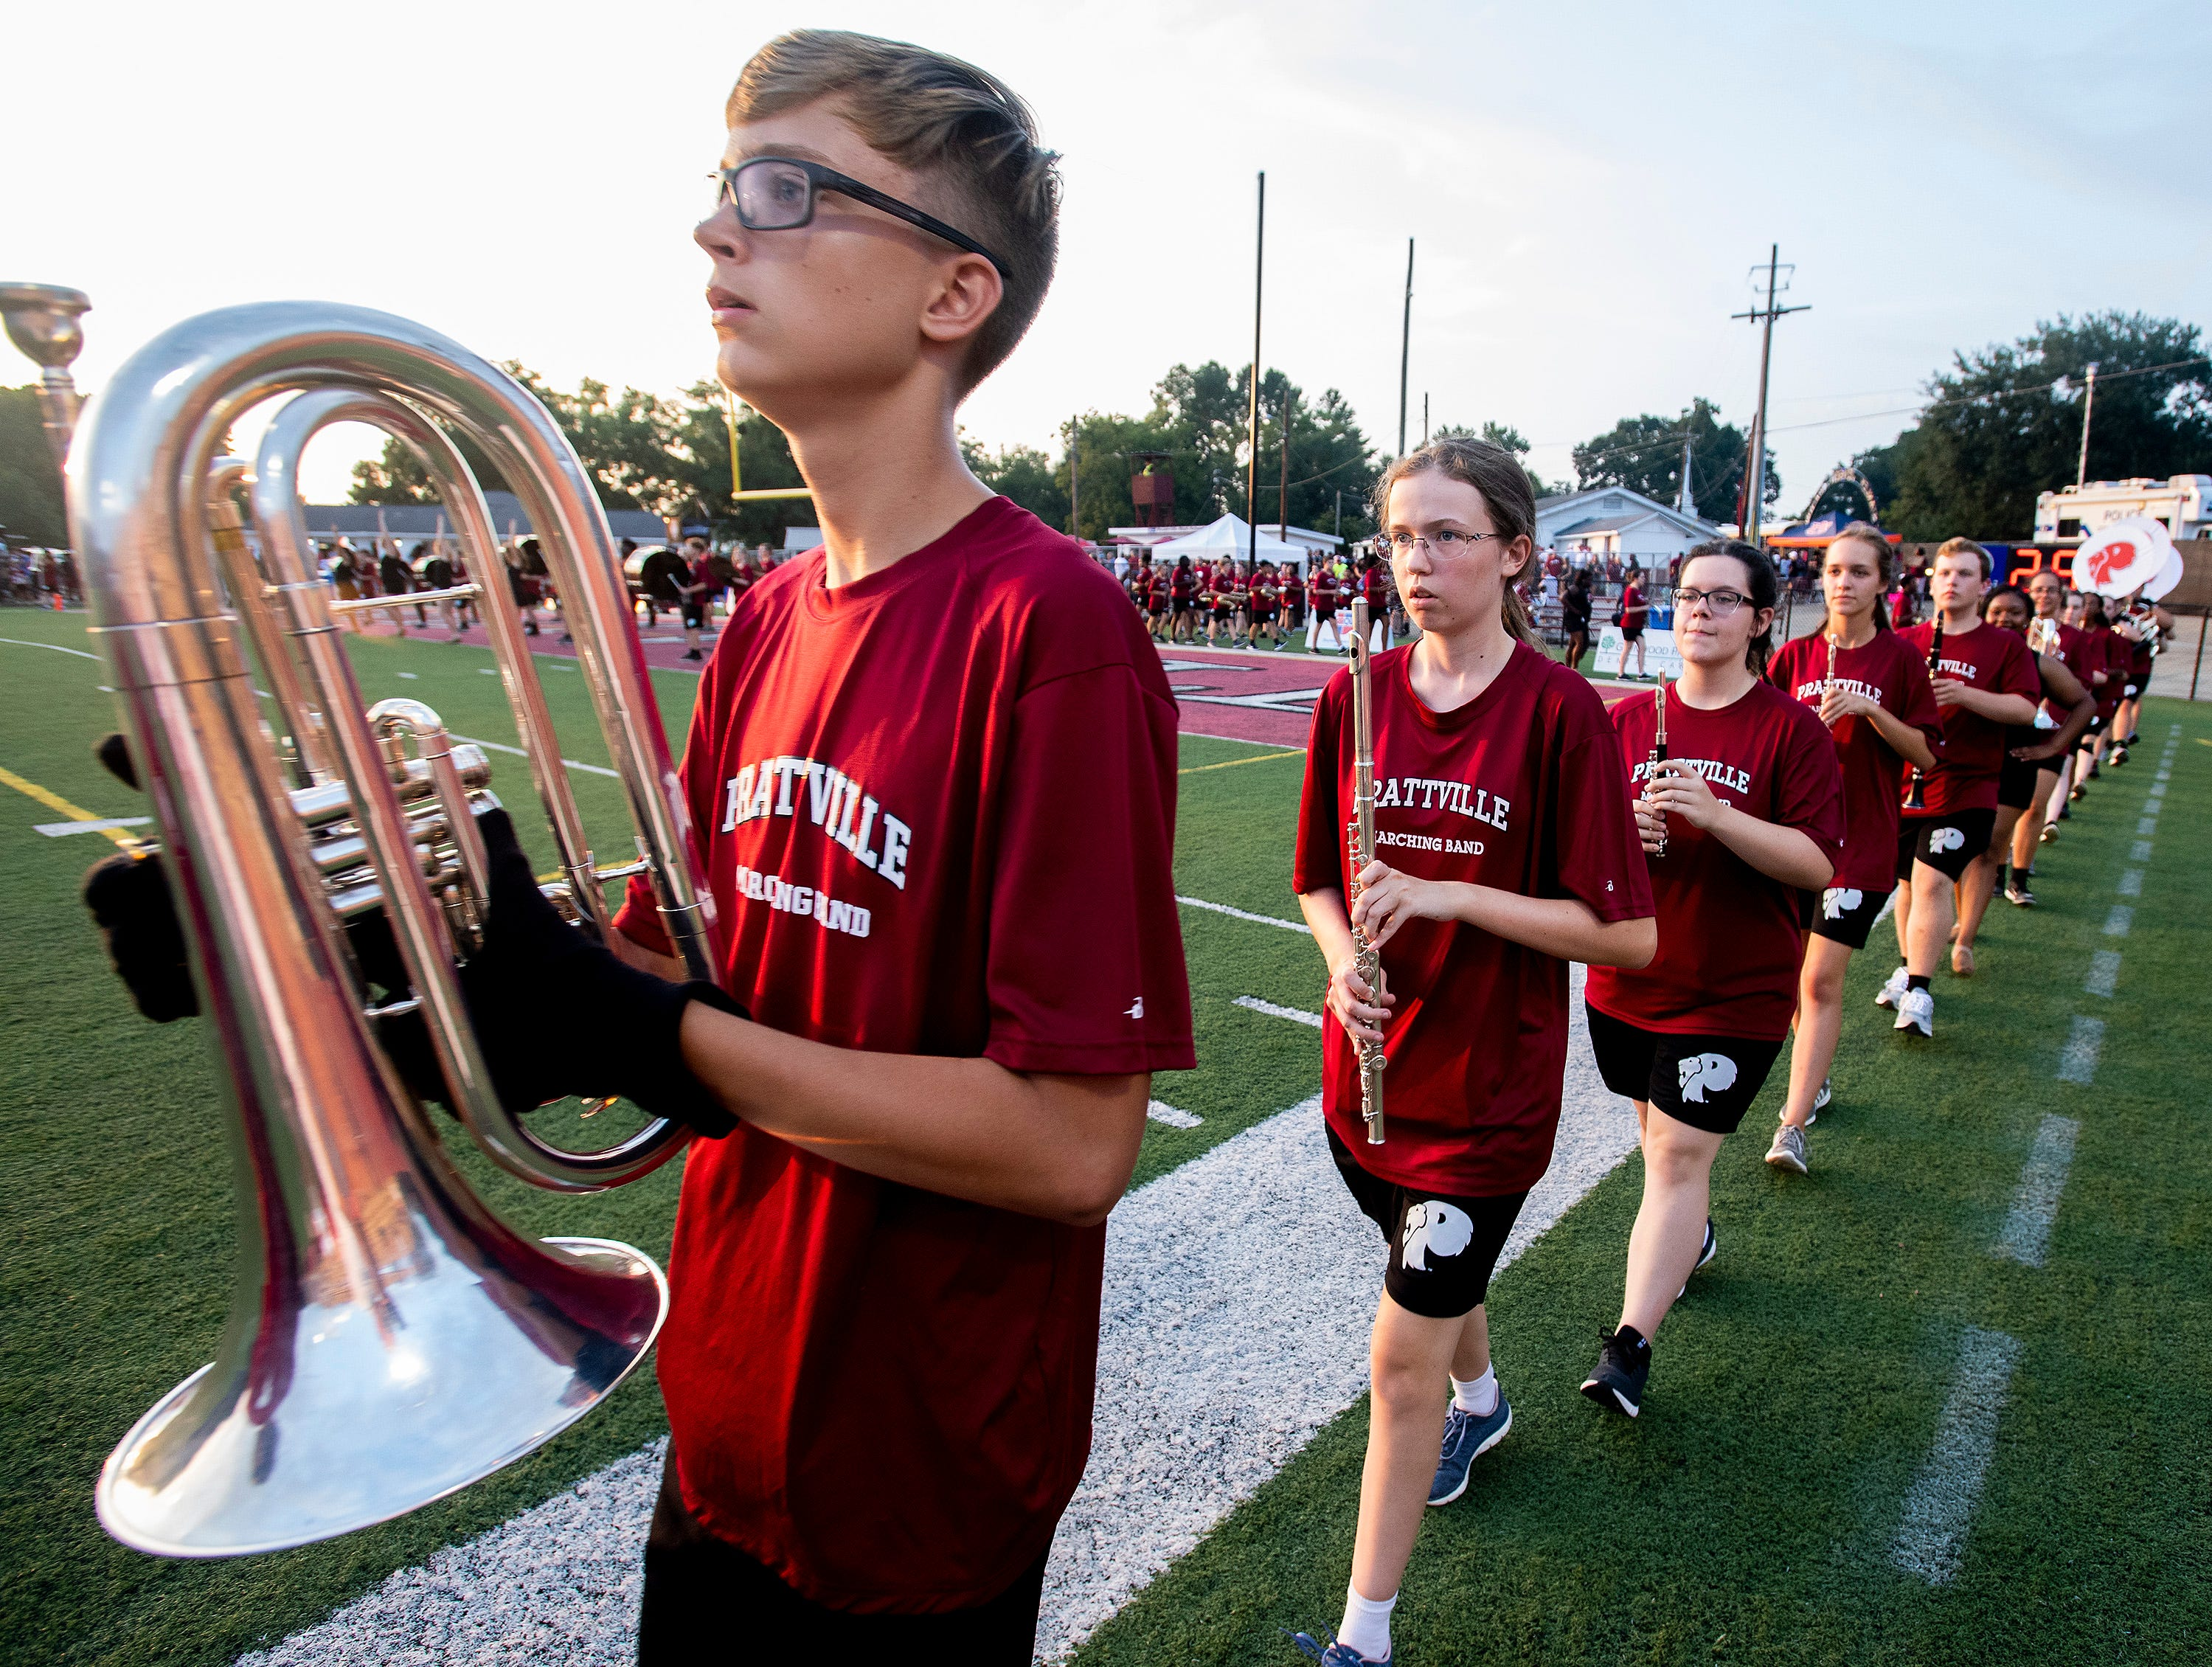 The Prattville band takes the field before the Foley game at Stanley-Jensen Stadium in Prattville, Ala., on Friday August 24, 2018.